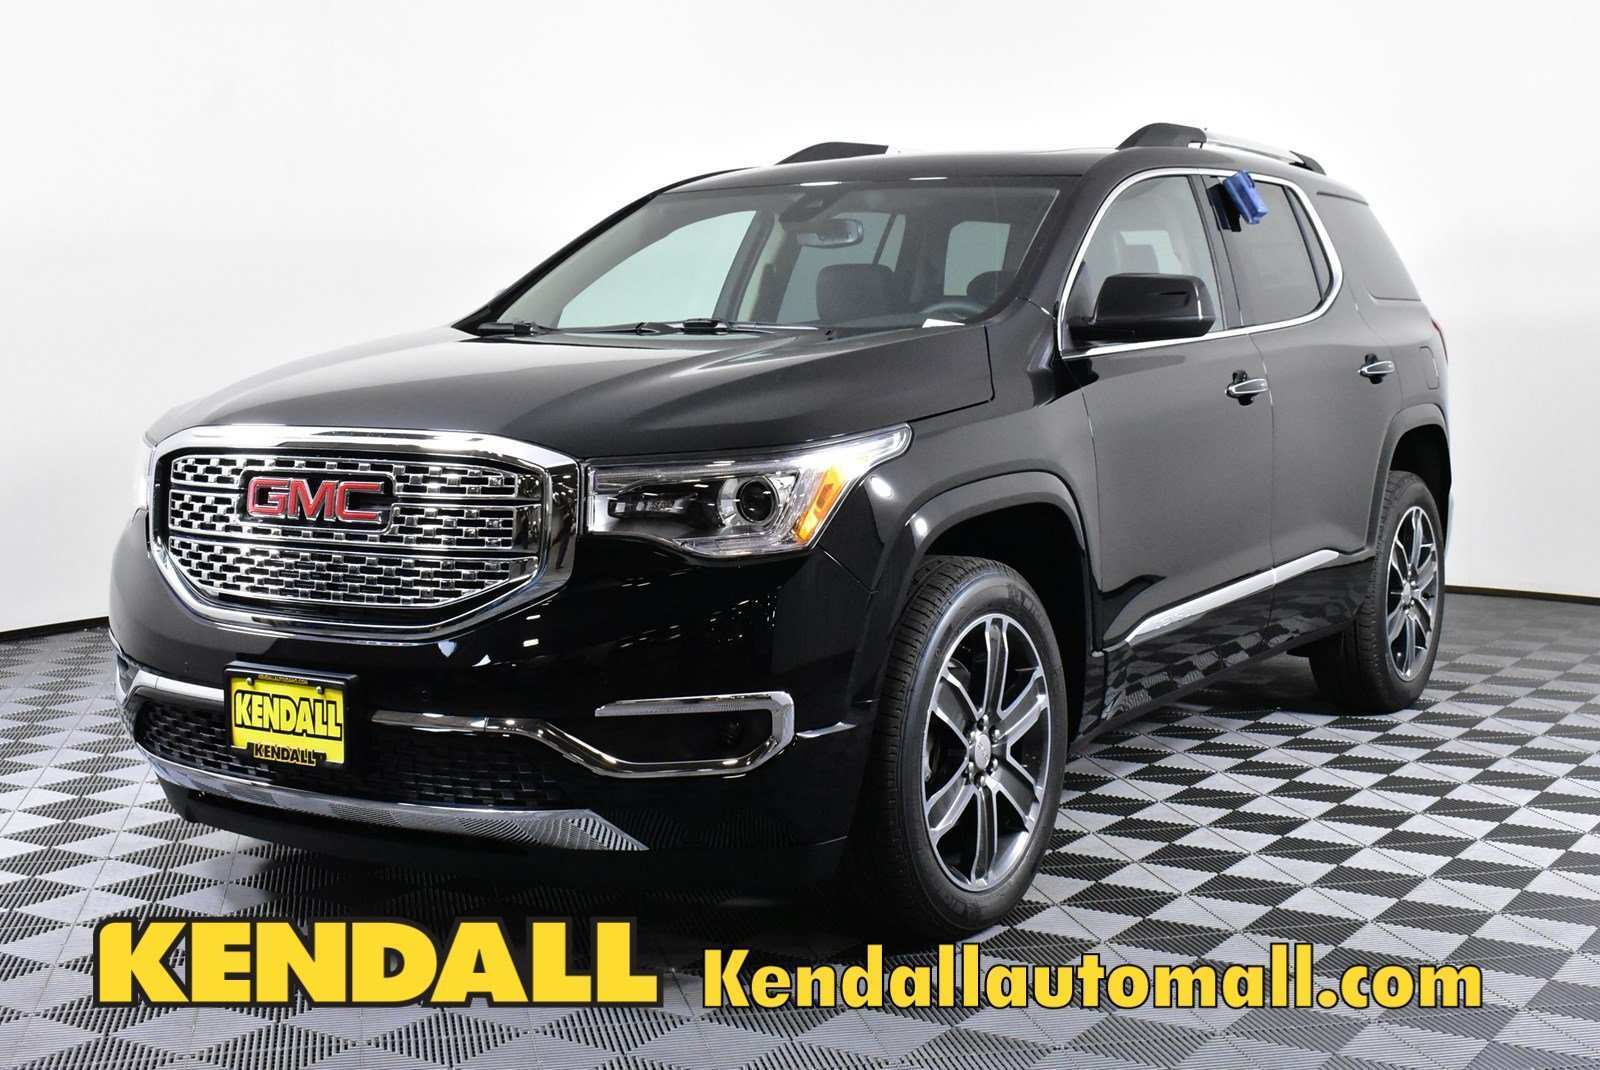 67 Great The 2019 Gmc Lease Exterior Wallpaper for The 2019 Gmc Lease Exterior